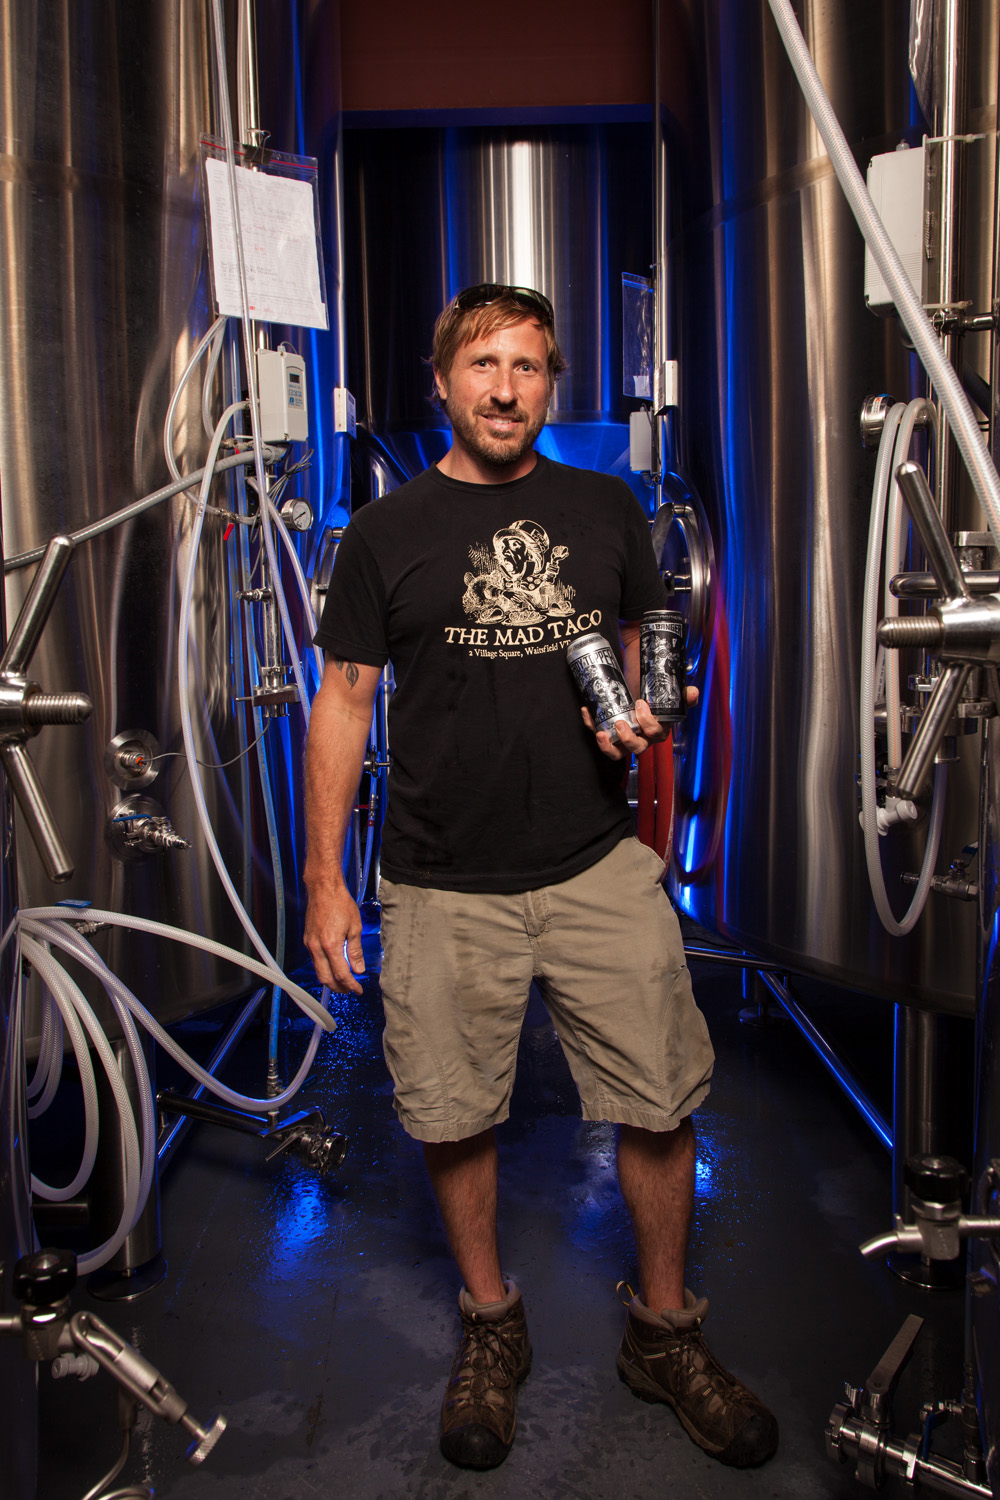 John Kimmich, Brewmaster at the Alchemist Brewery in Waterbury, VT Established in 2003